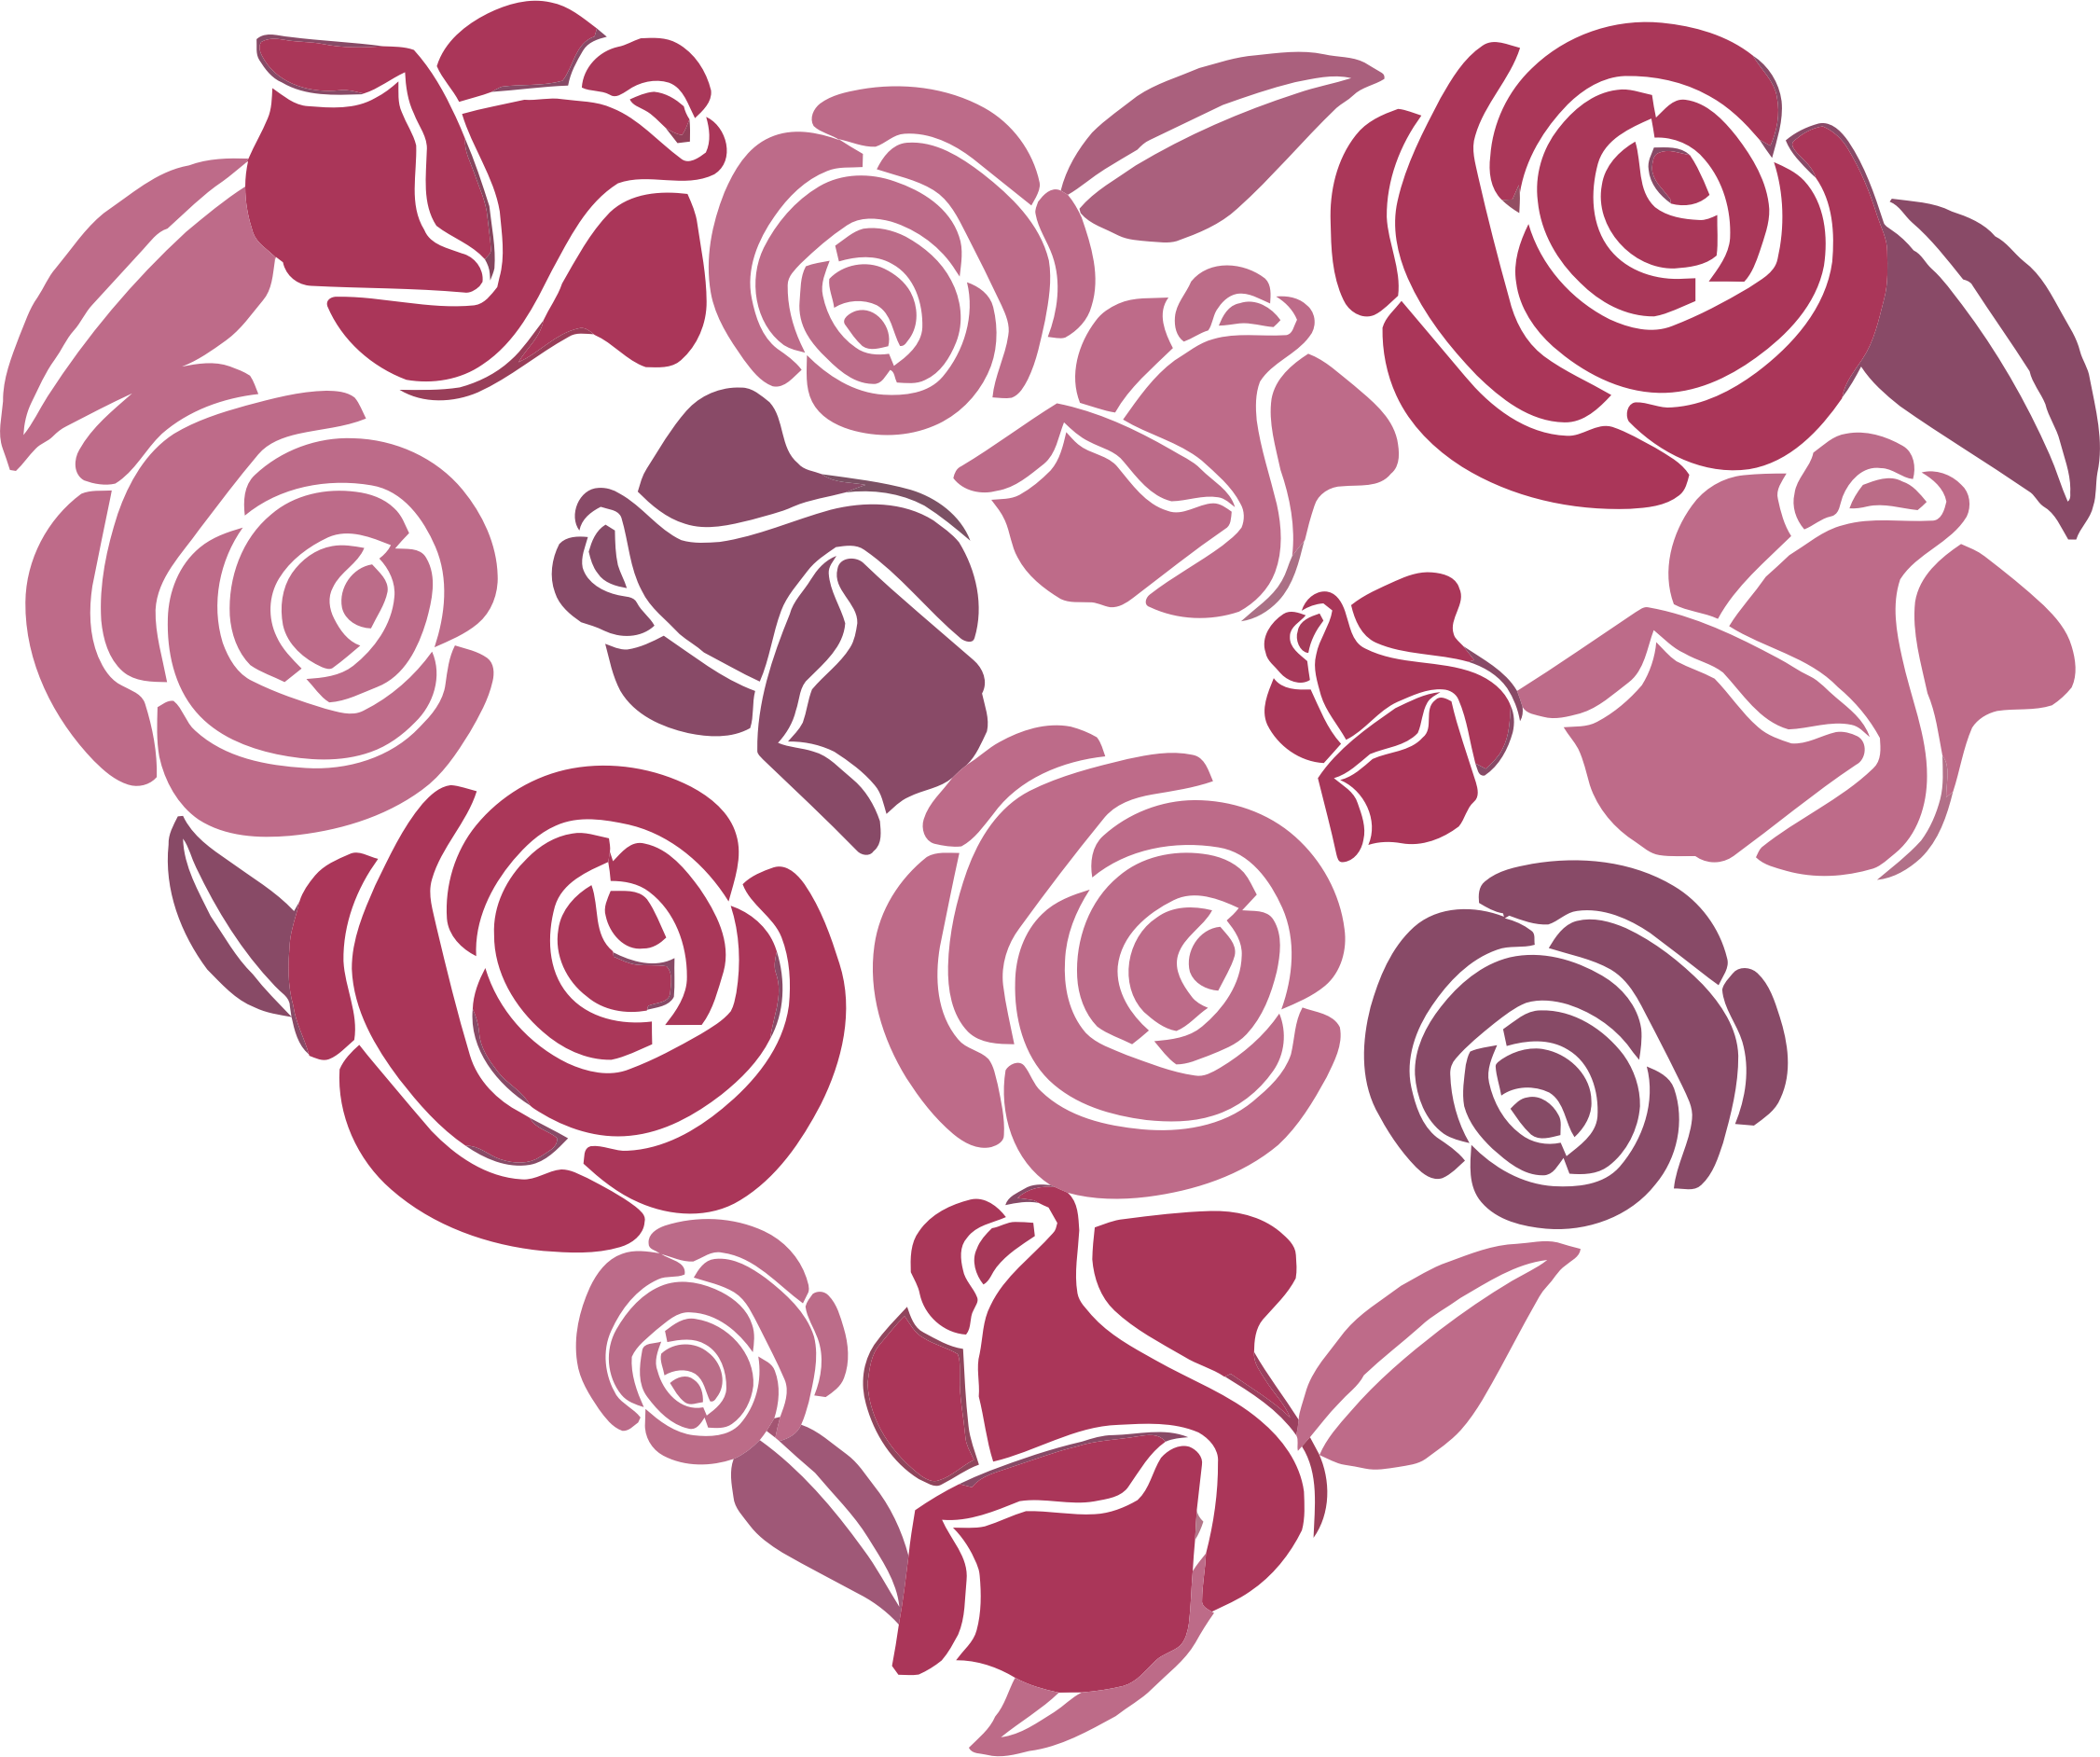 Clipart roses heart. Big image png